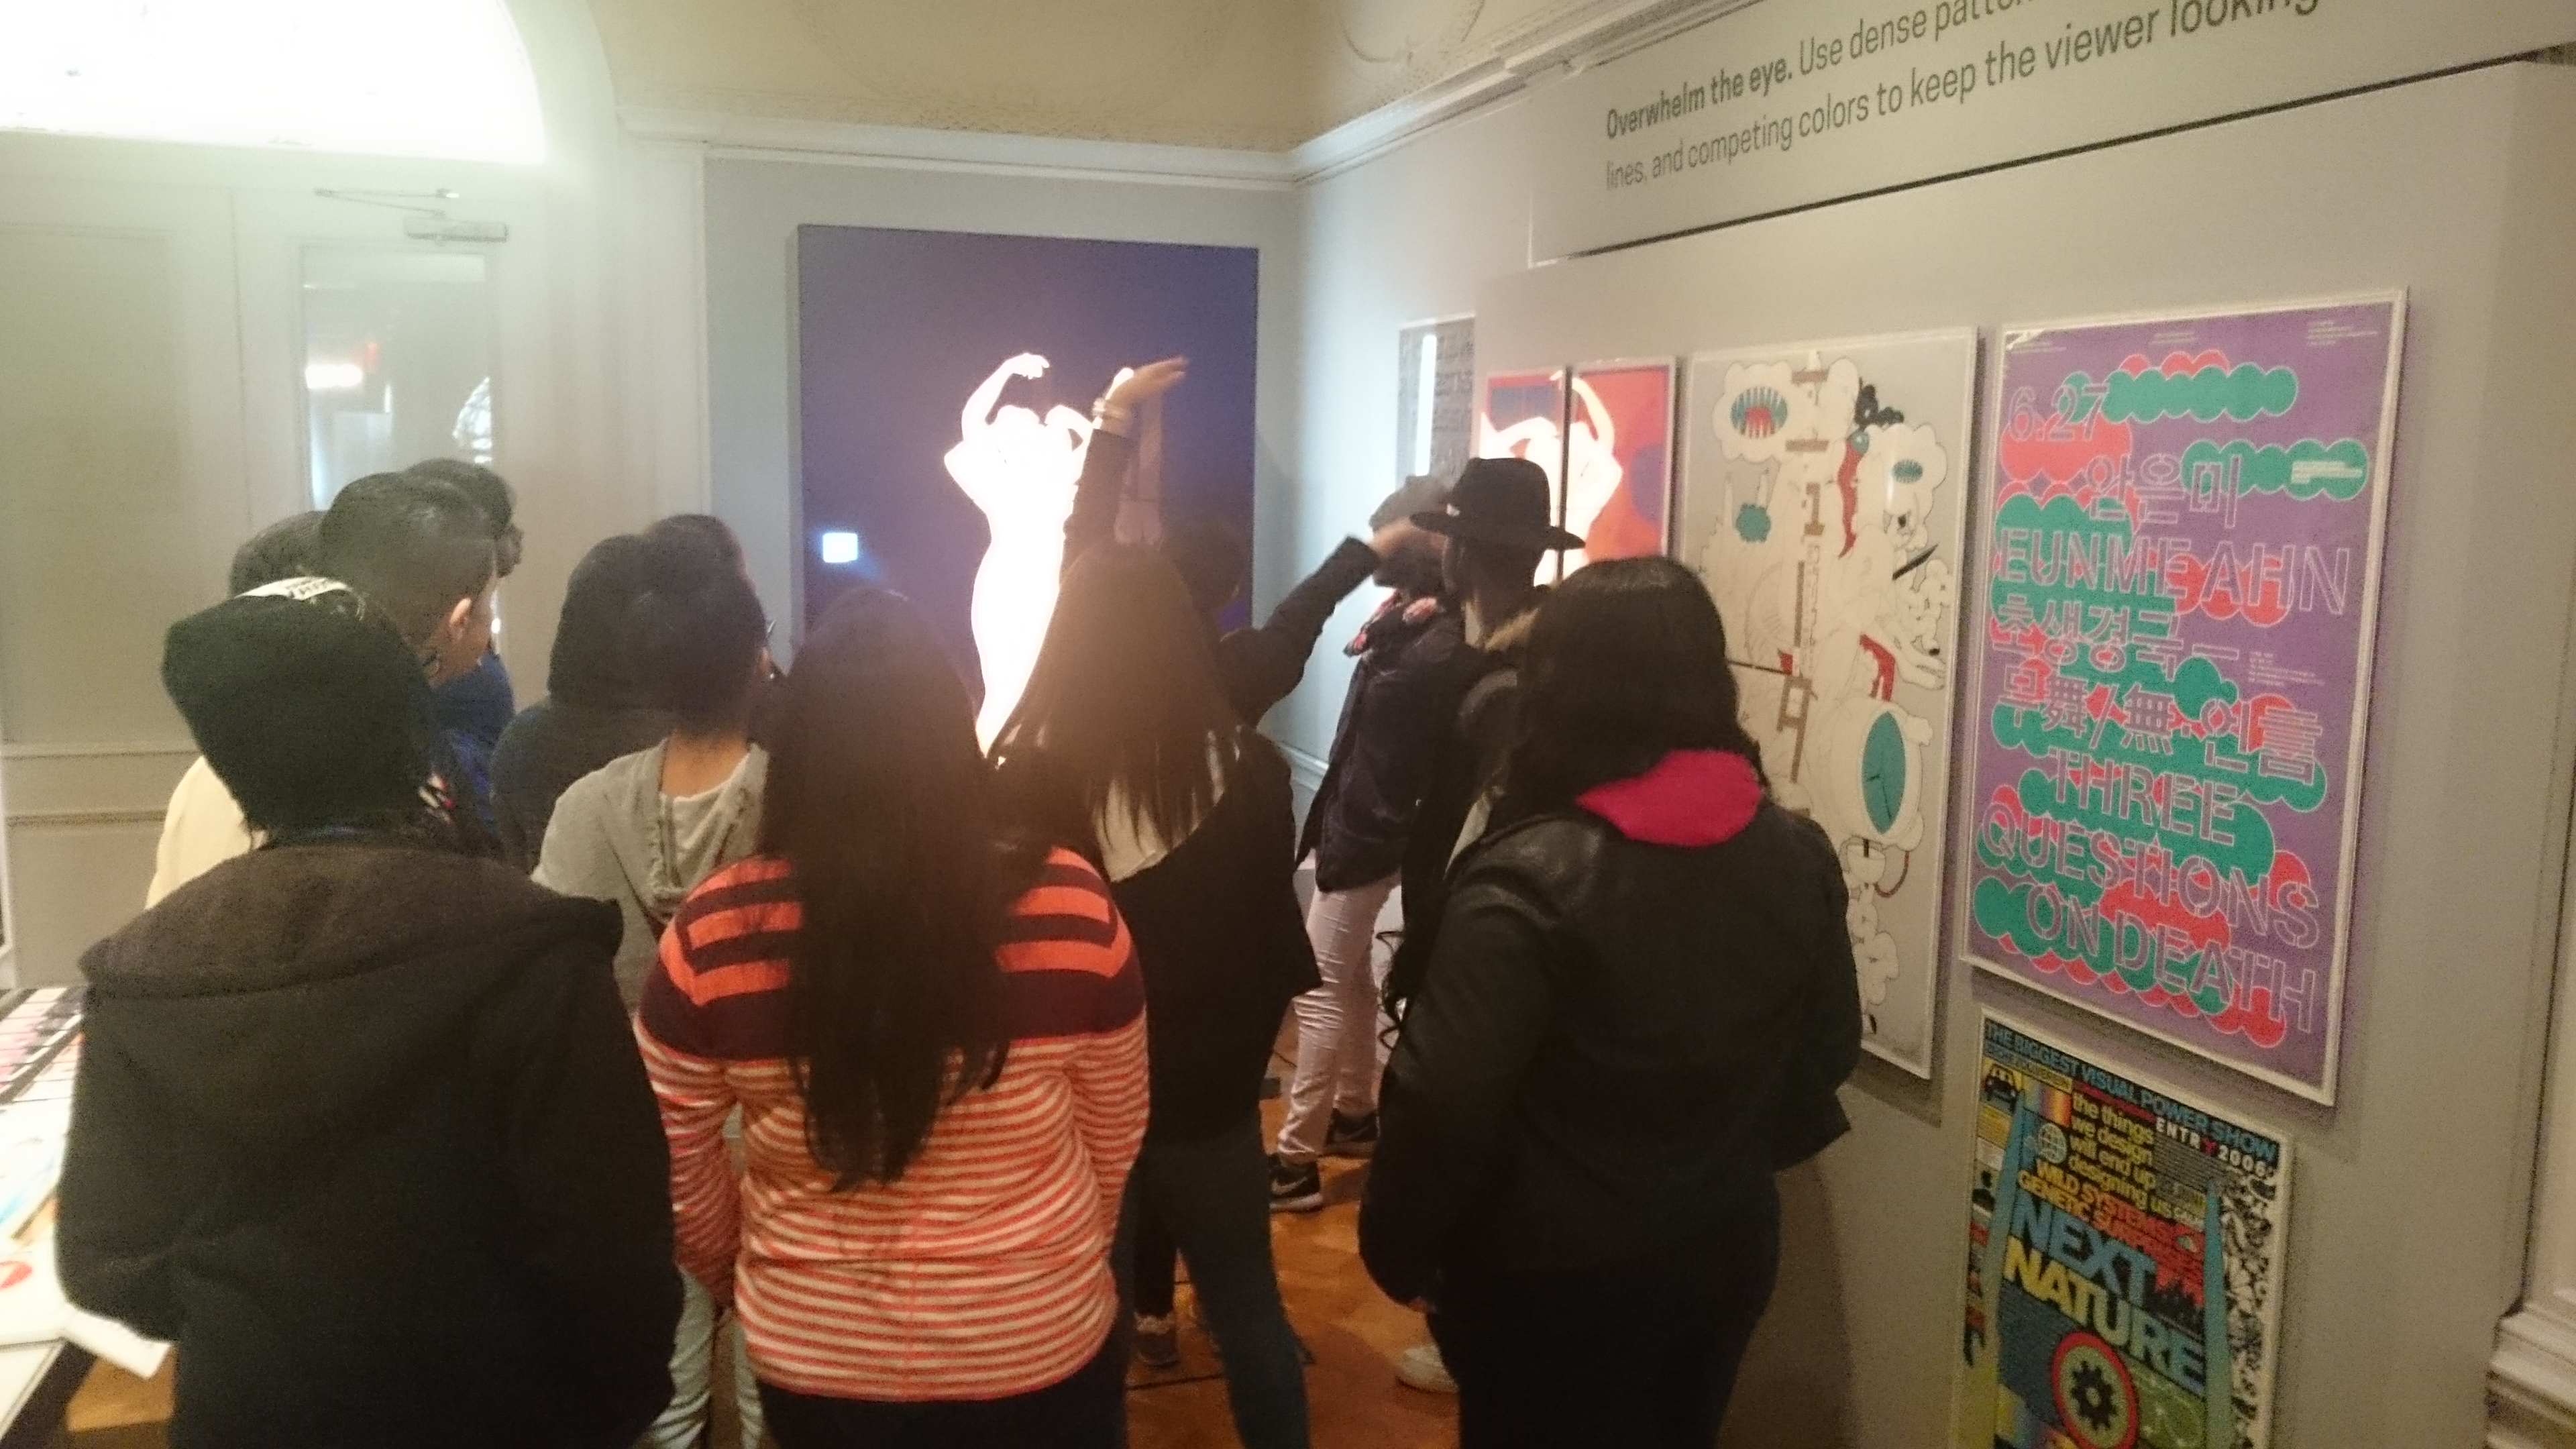 picture of group using full body gestures to browse the collection